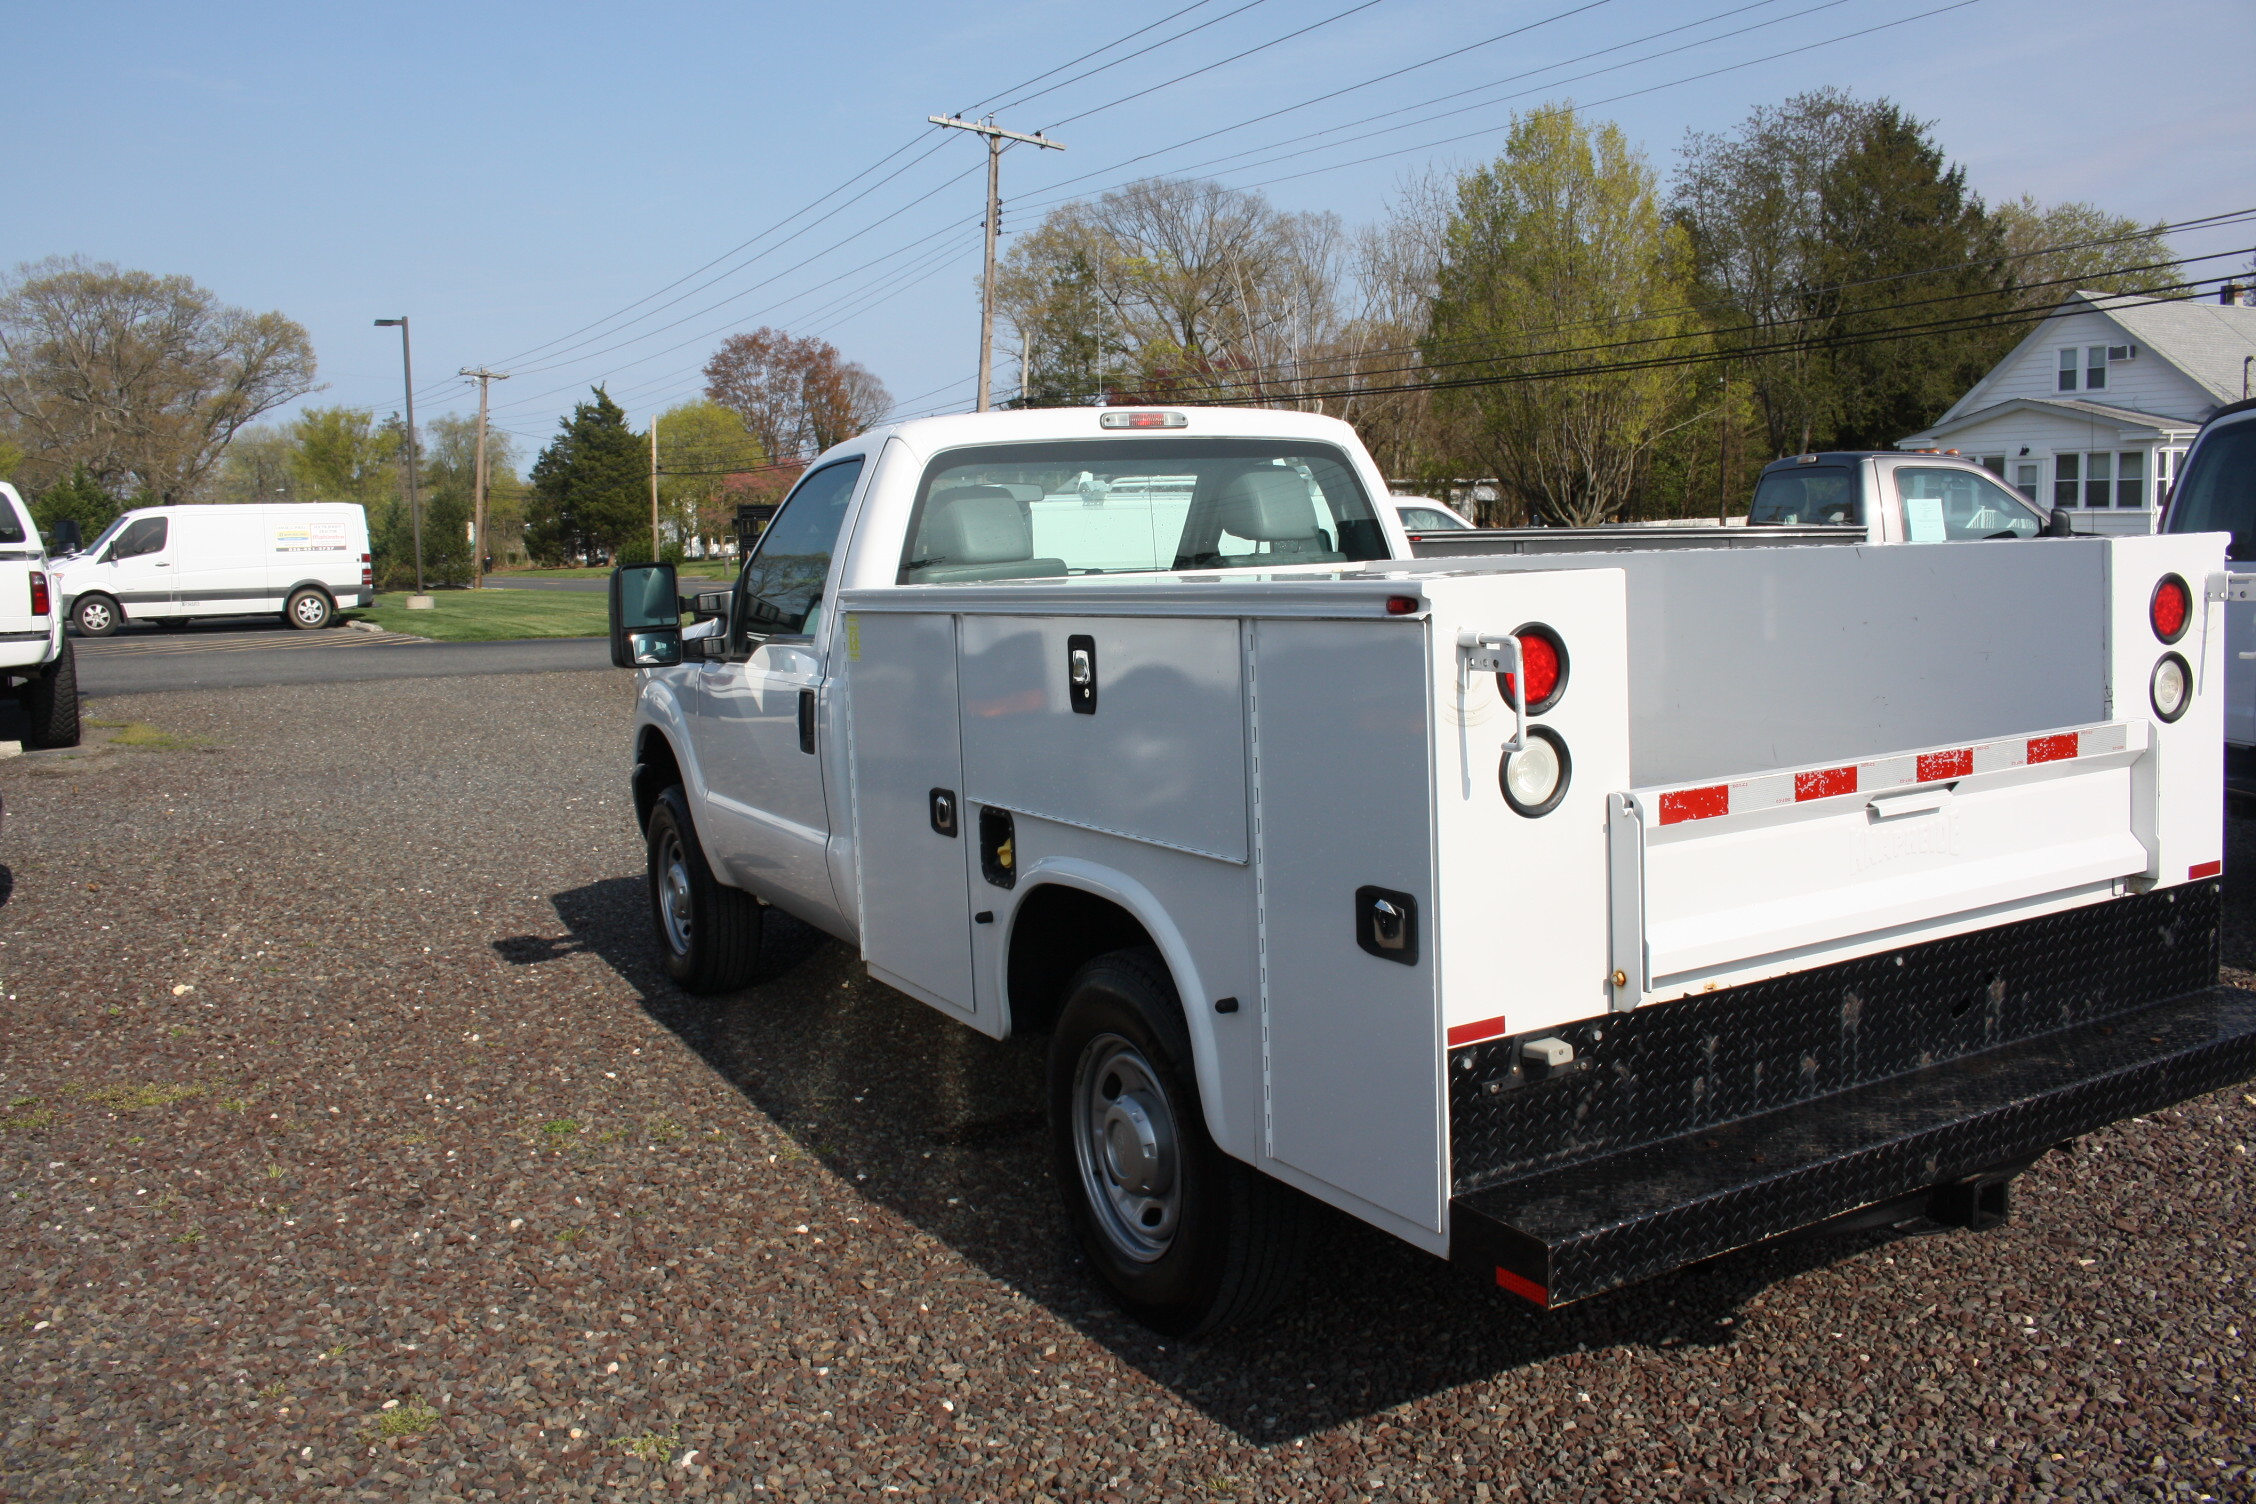 IMG 3583 - 2015 FORD F250 OPEN UTILITY TRUCK